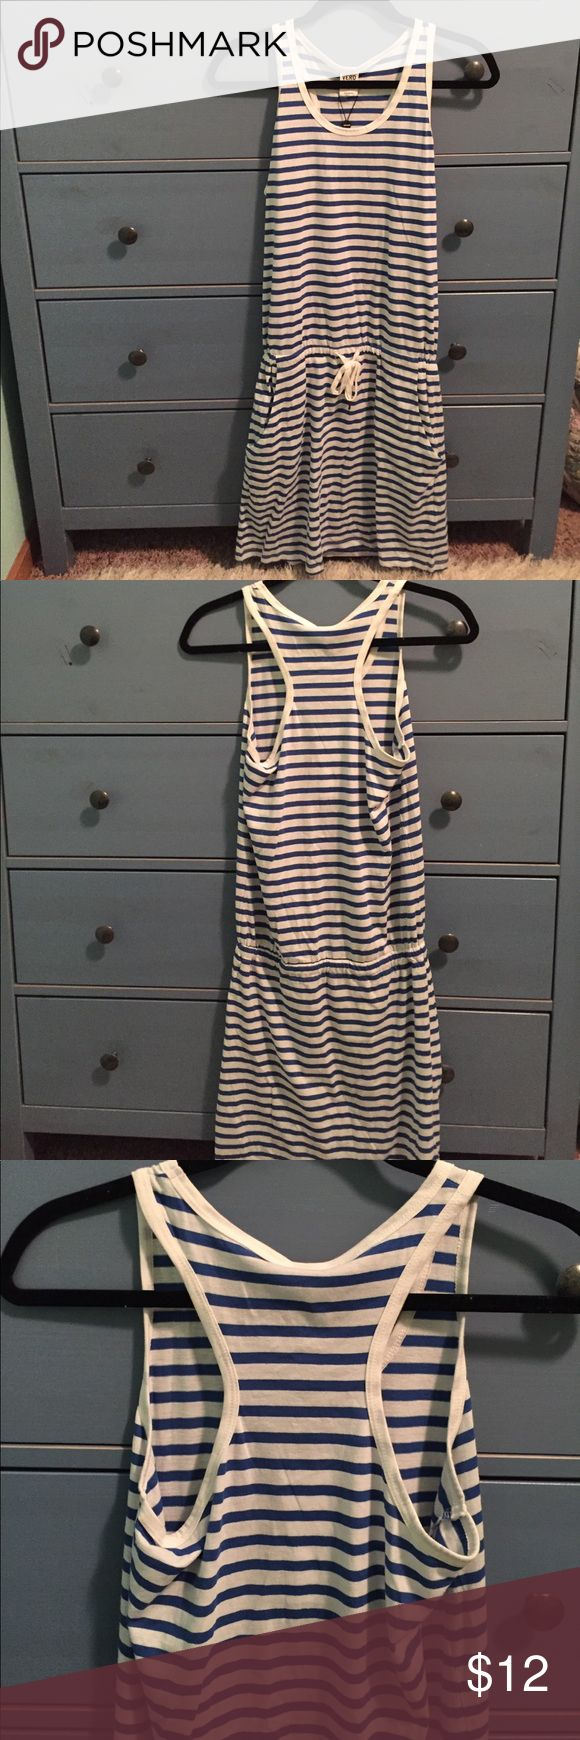 Drop-Waisted Striped Racerback Dress This NWT dress is a drop-waisted summer dress with a tie that tightens that waist. It has a racerback and pockets. It hits at about the knee. Would make an adorable cover-up for a swimsuit or could be worn by itself. It was purchased from Modcloth and is the brand Vero Moda. ModCloth Dresses Midi